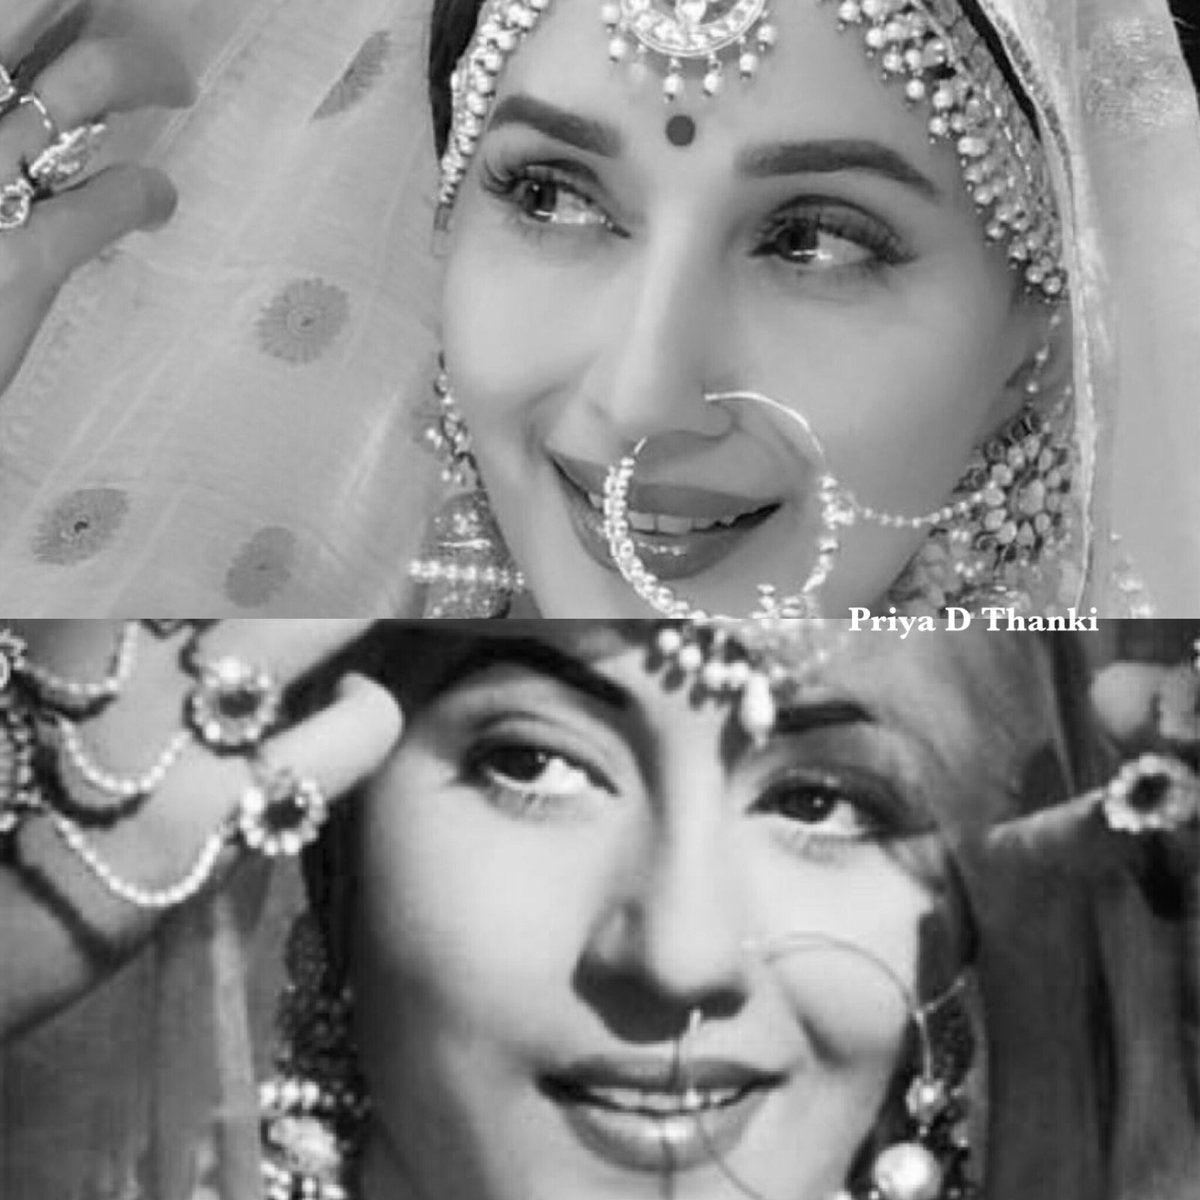 Madhuri-Dixit-Recreates-Madhubala-in-the-Sets-of-Dance-Deewane